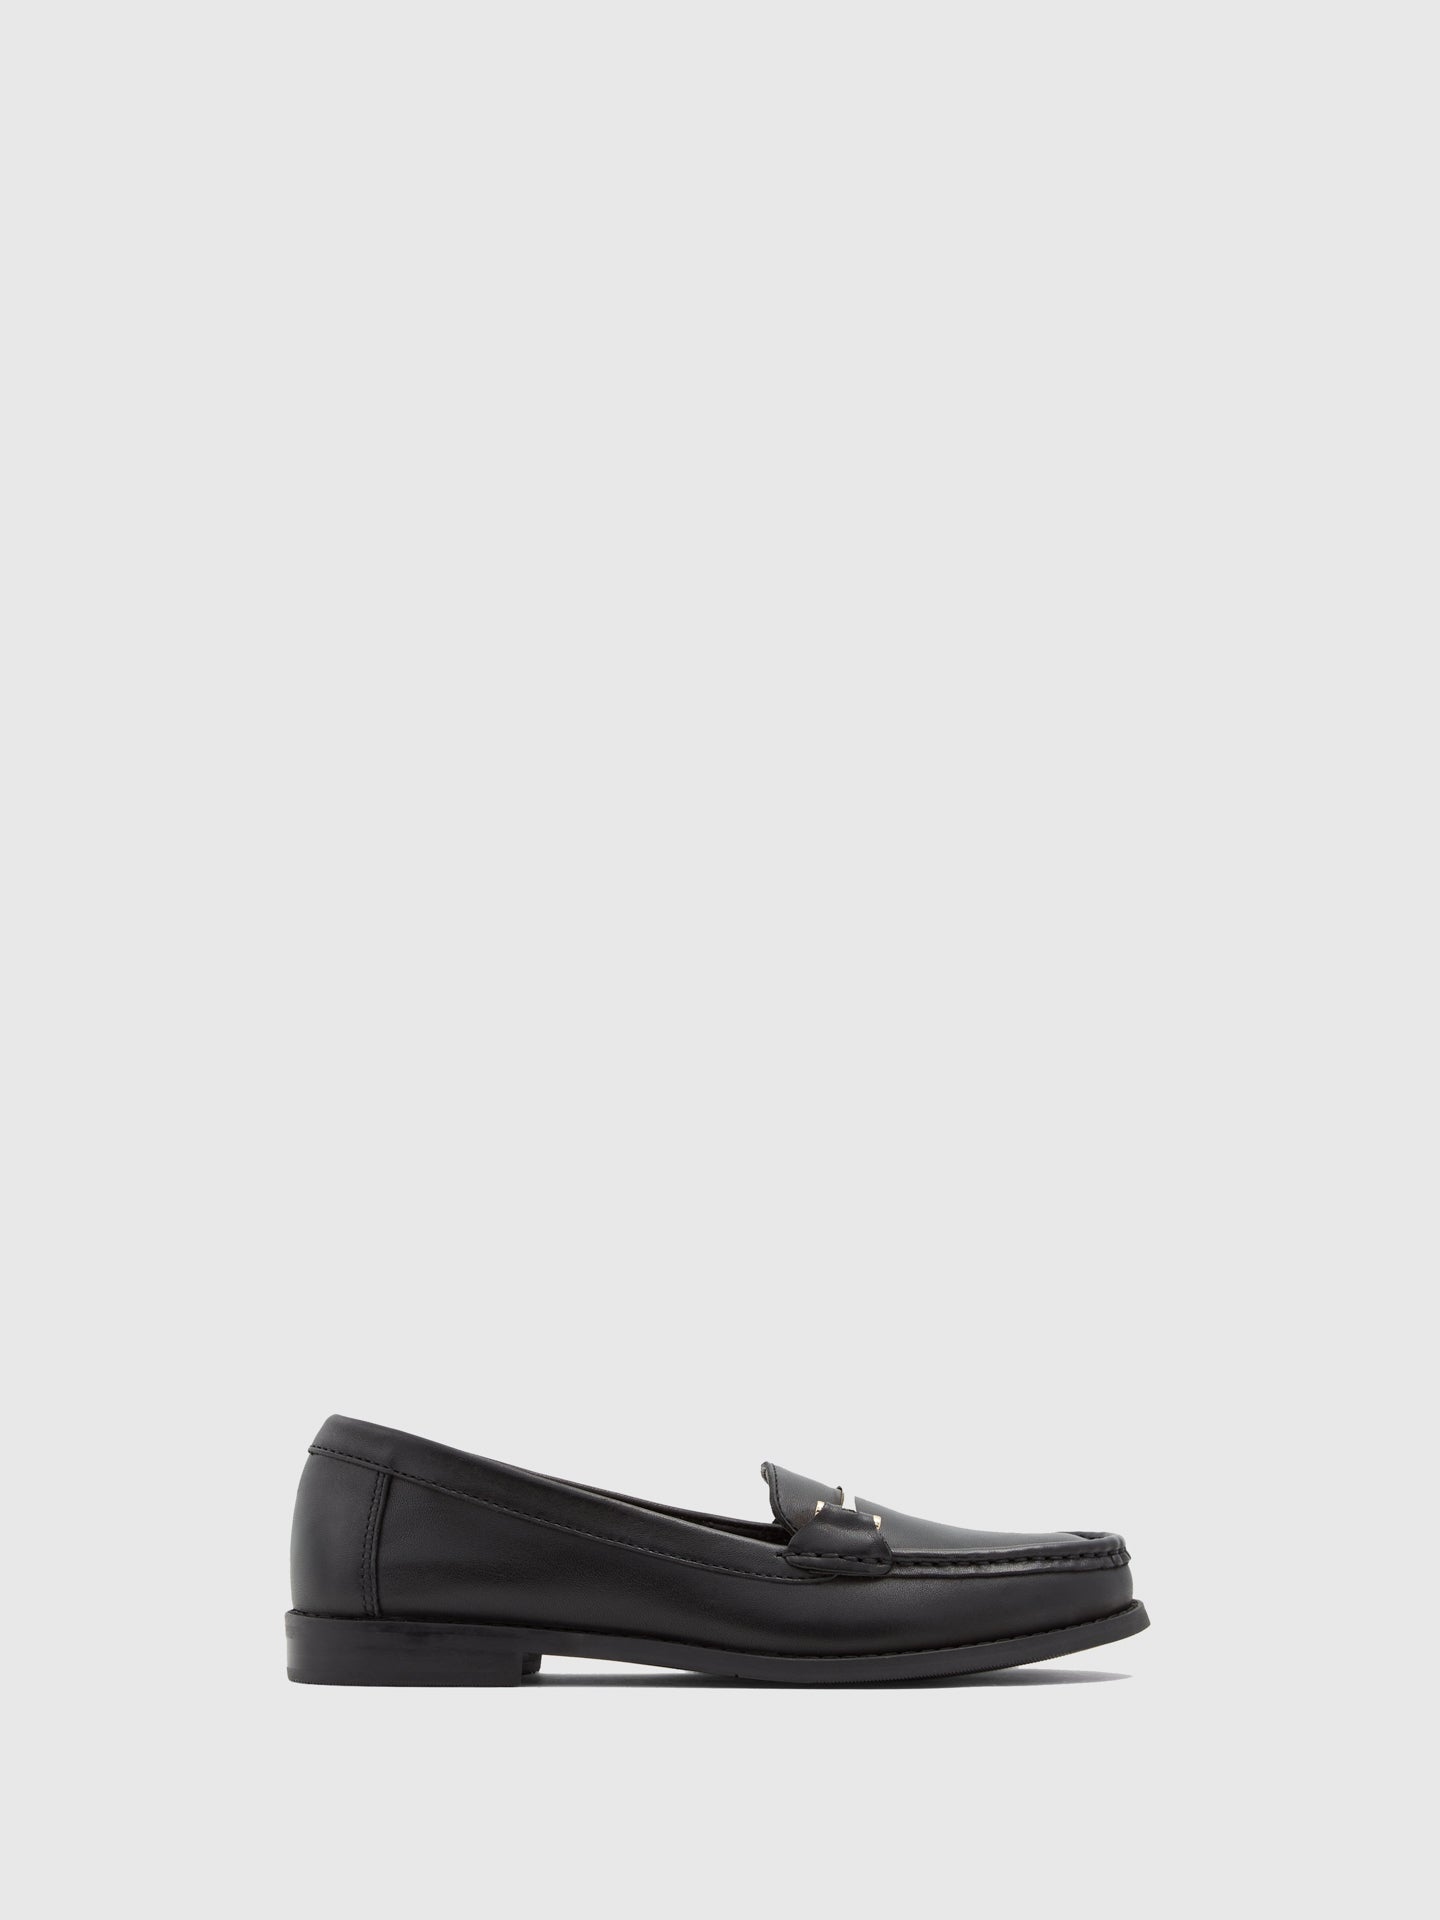 Aldo Black Mocassins Shoes